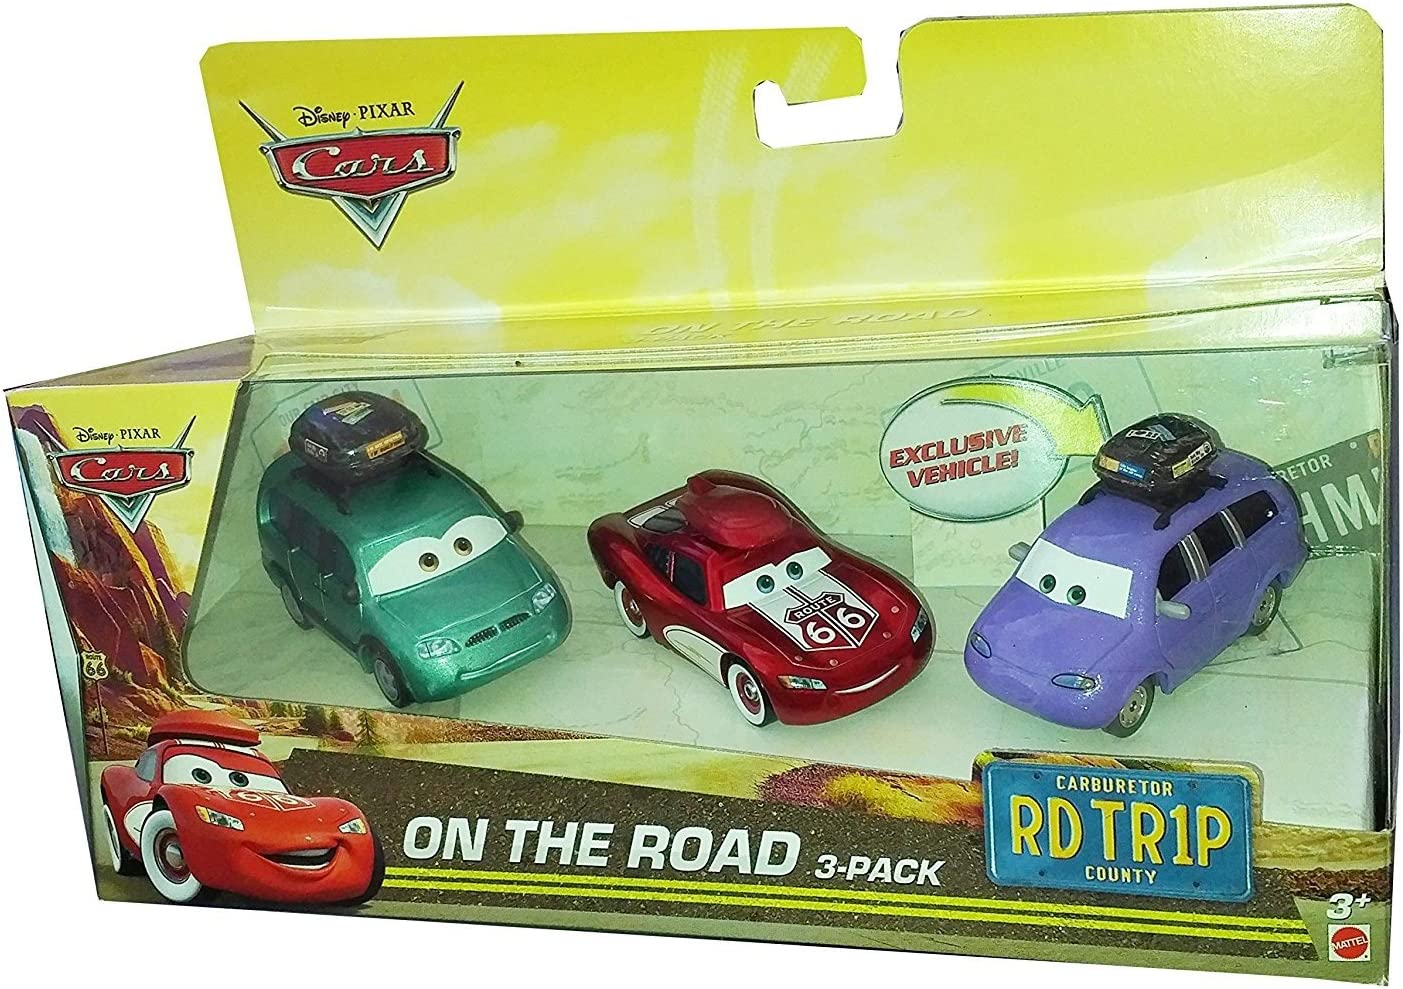 Disney Pixar CARS: On The Road 3 Pack - Cruisin Lightning McQueen, Van, Mini with Luggage Carrier: Amazon.es: Juguetes y juegos